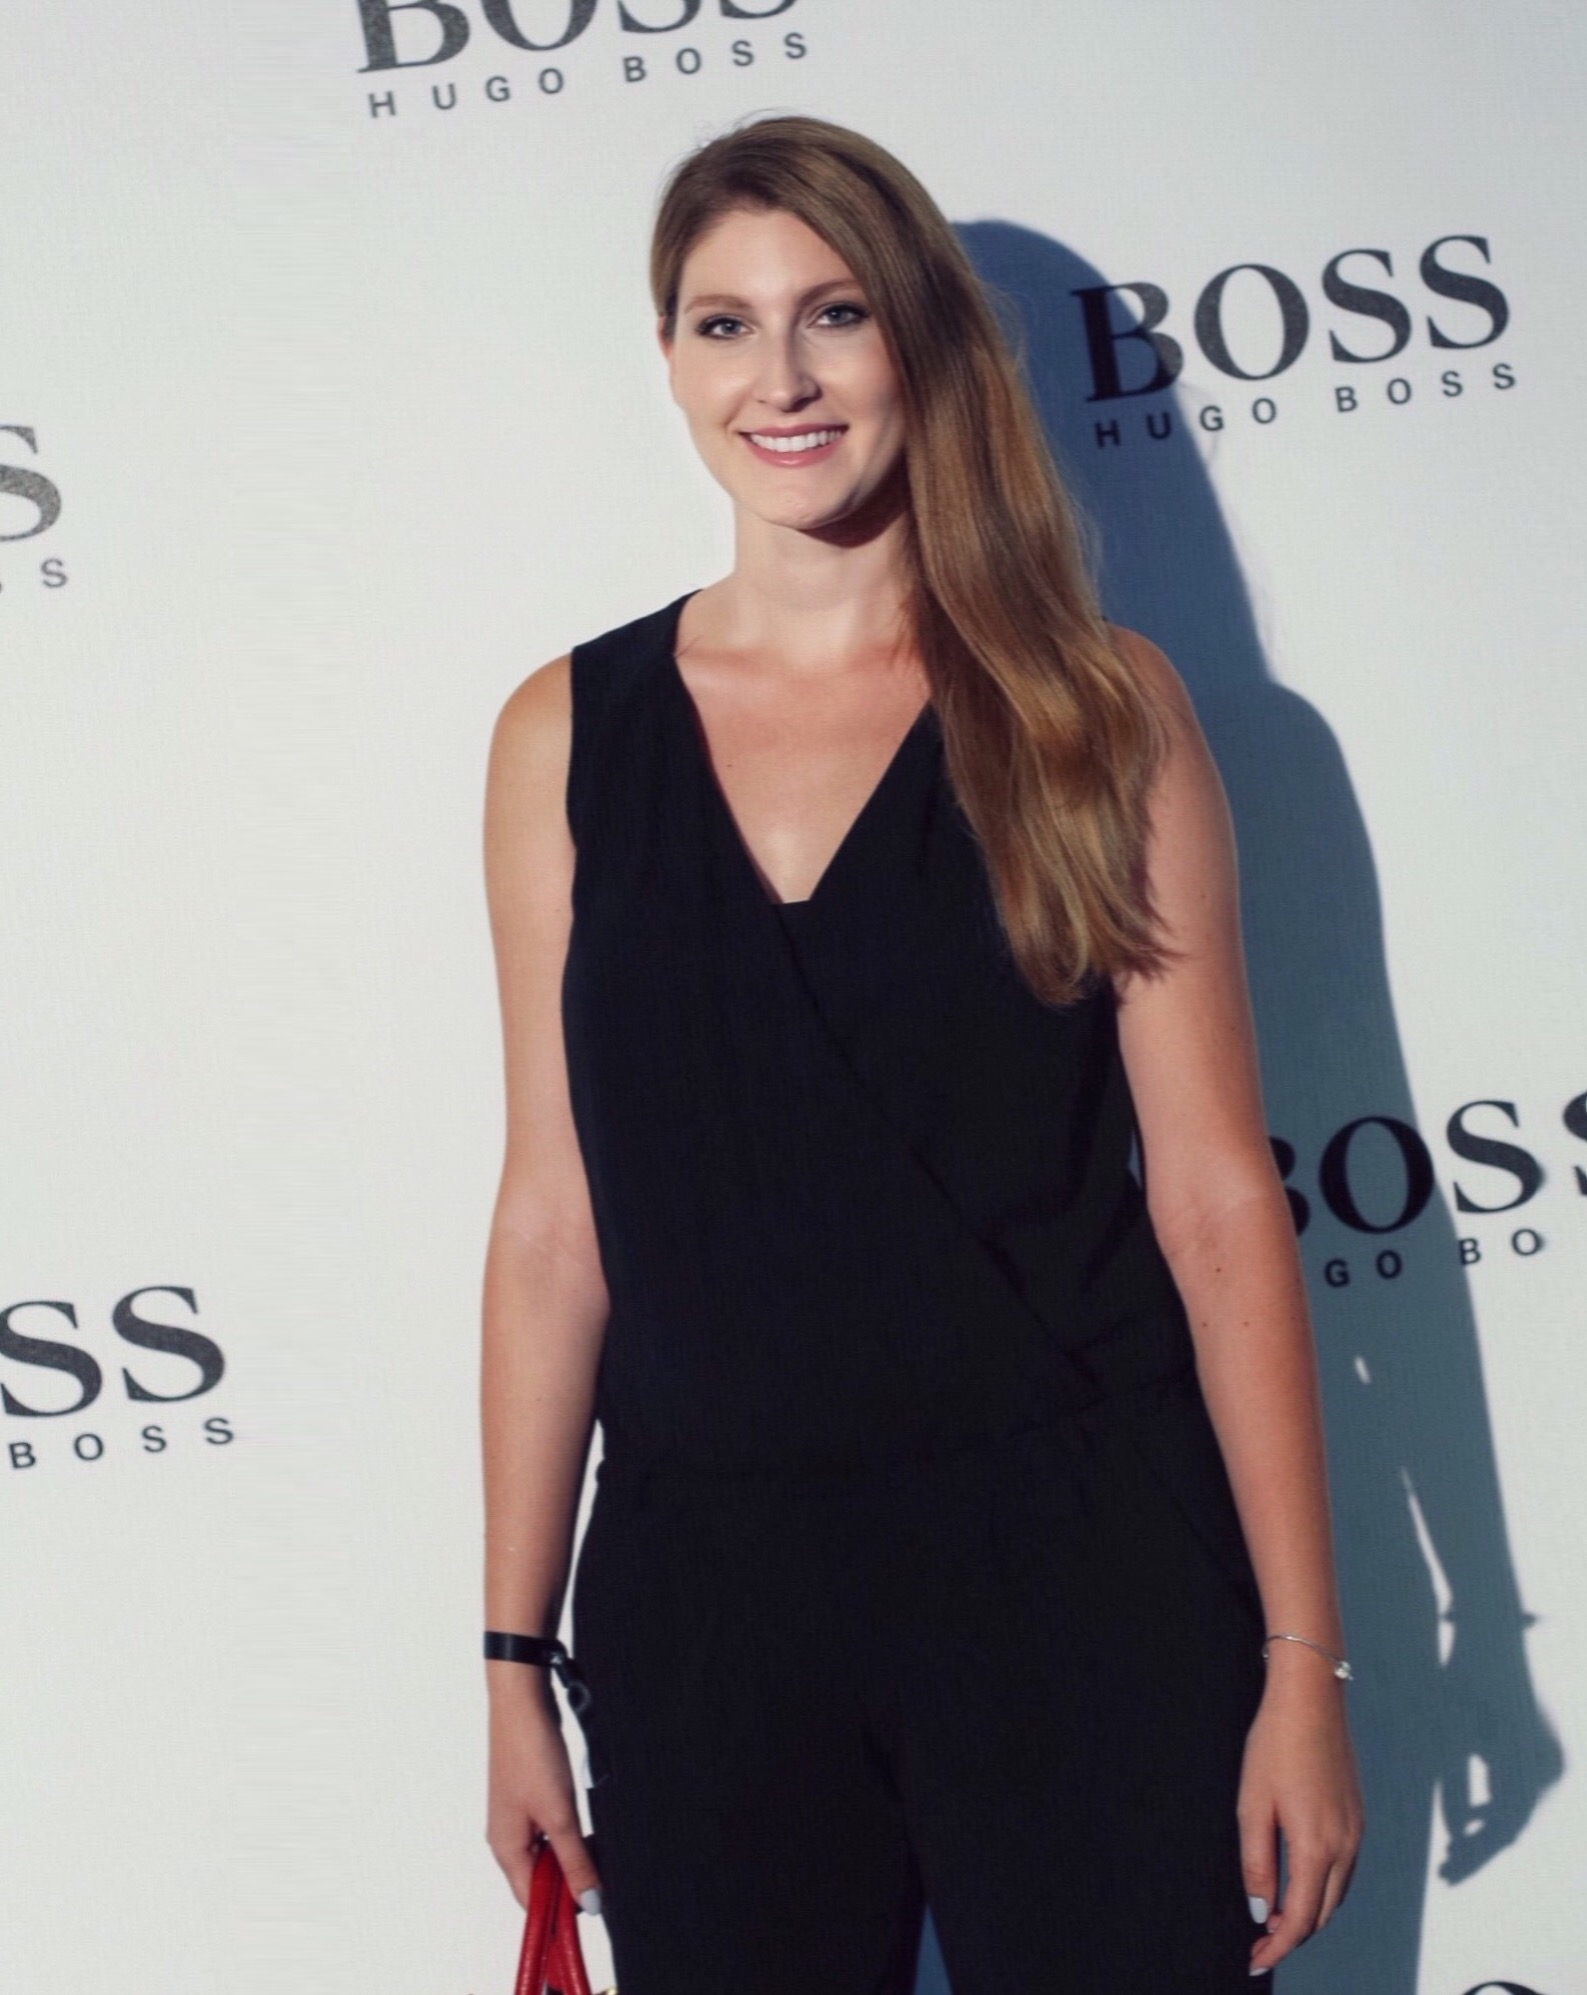 hugo_boss_reopening_party3.jpg